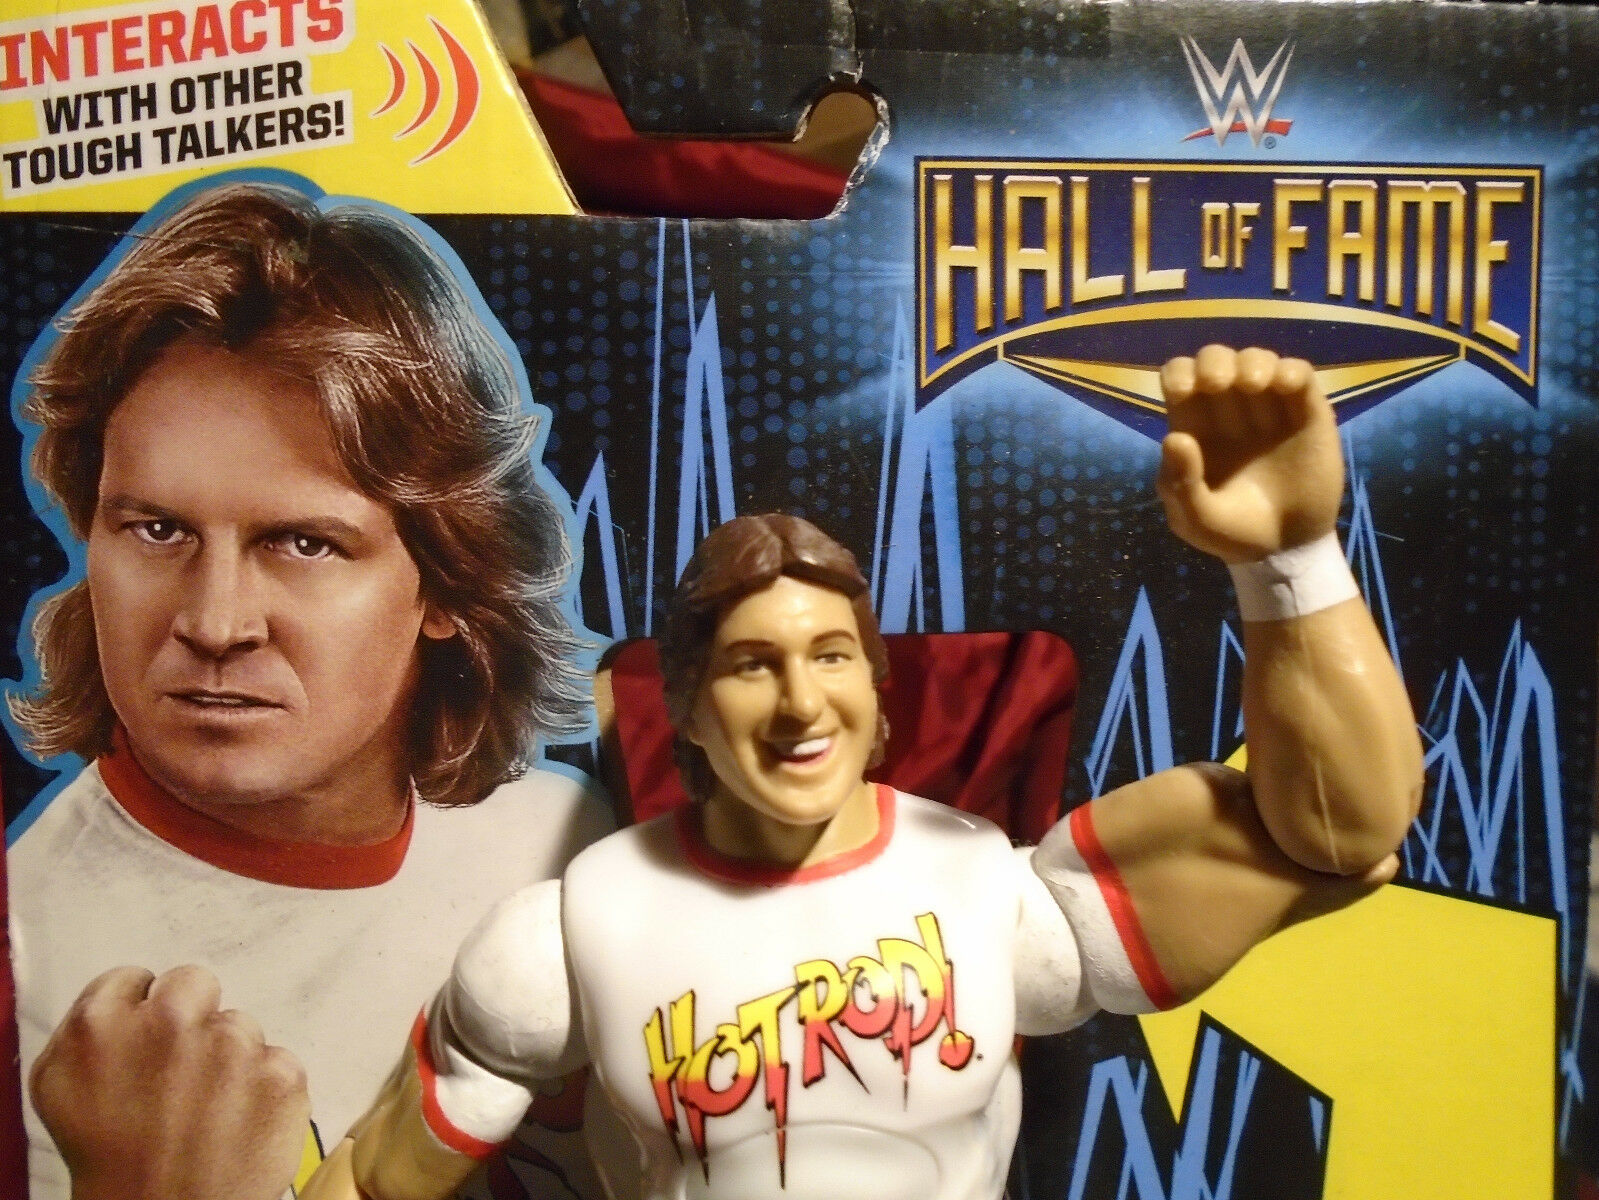 ROWDY RODDY PIPER WWE WWF HALL OF FAME TOUGH TALKERS Target Exclusive MATTEL HTF